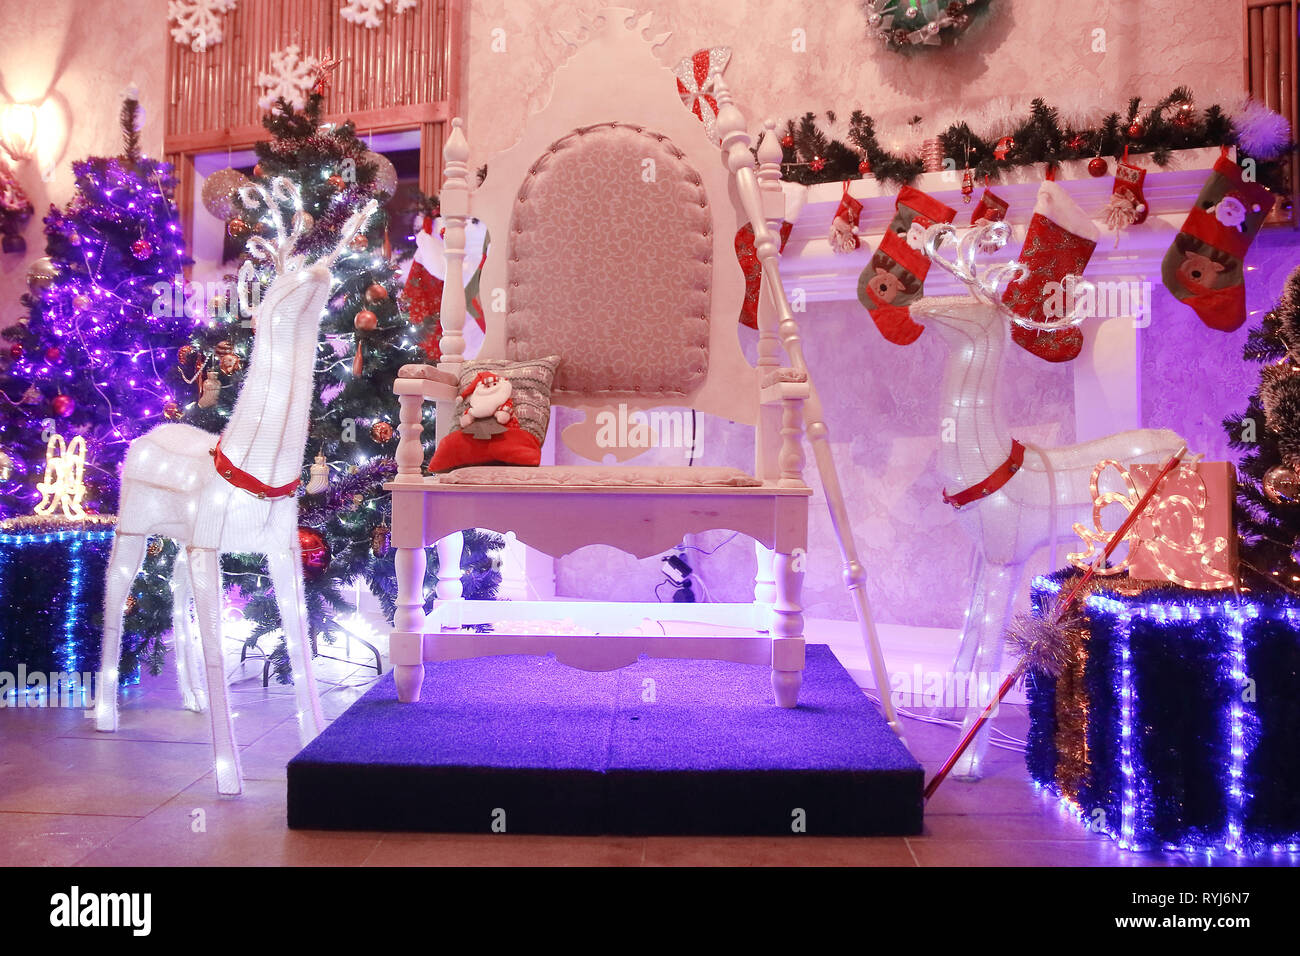 chair for Santa Claus in the festive living room. - Stock Image